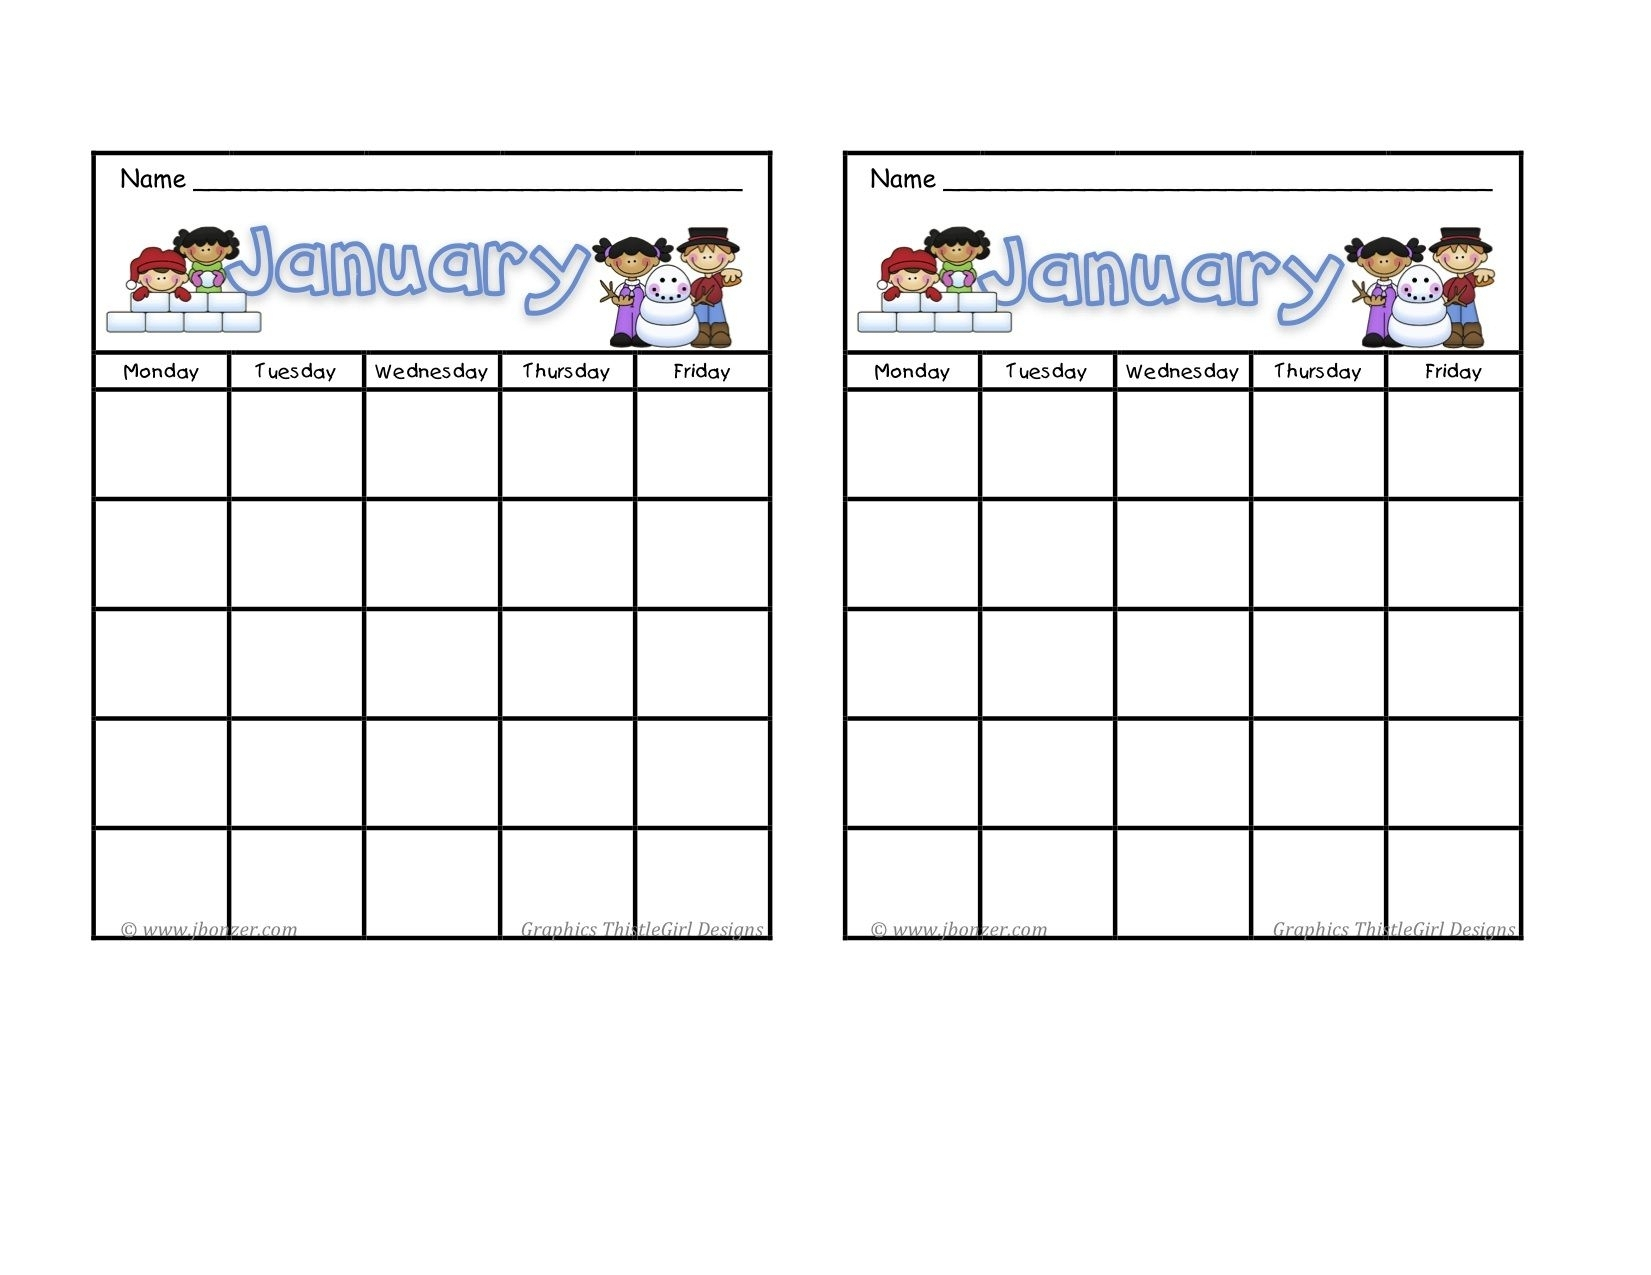 Blank Calendar Chart For Classrooms | Template Calendar Printable with regard to Blank Calendar Chart For Classrooms